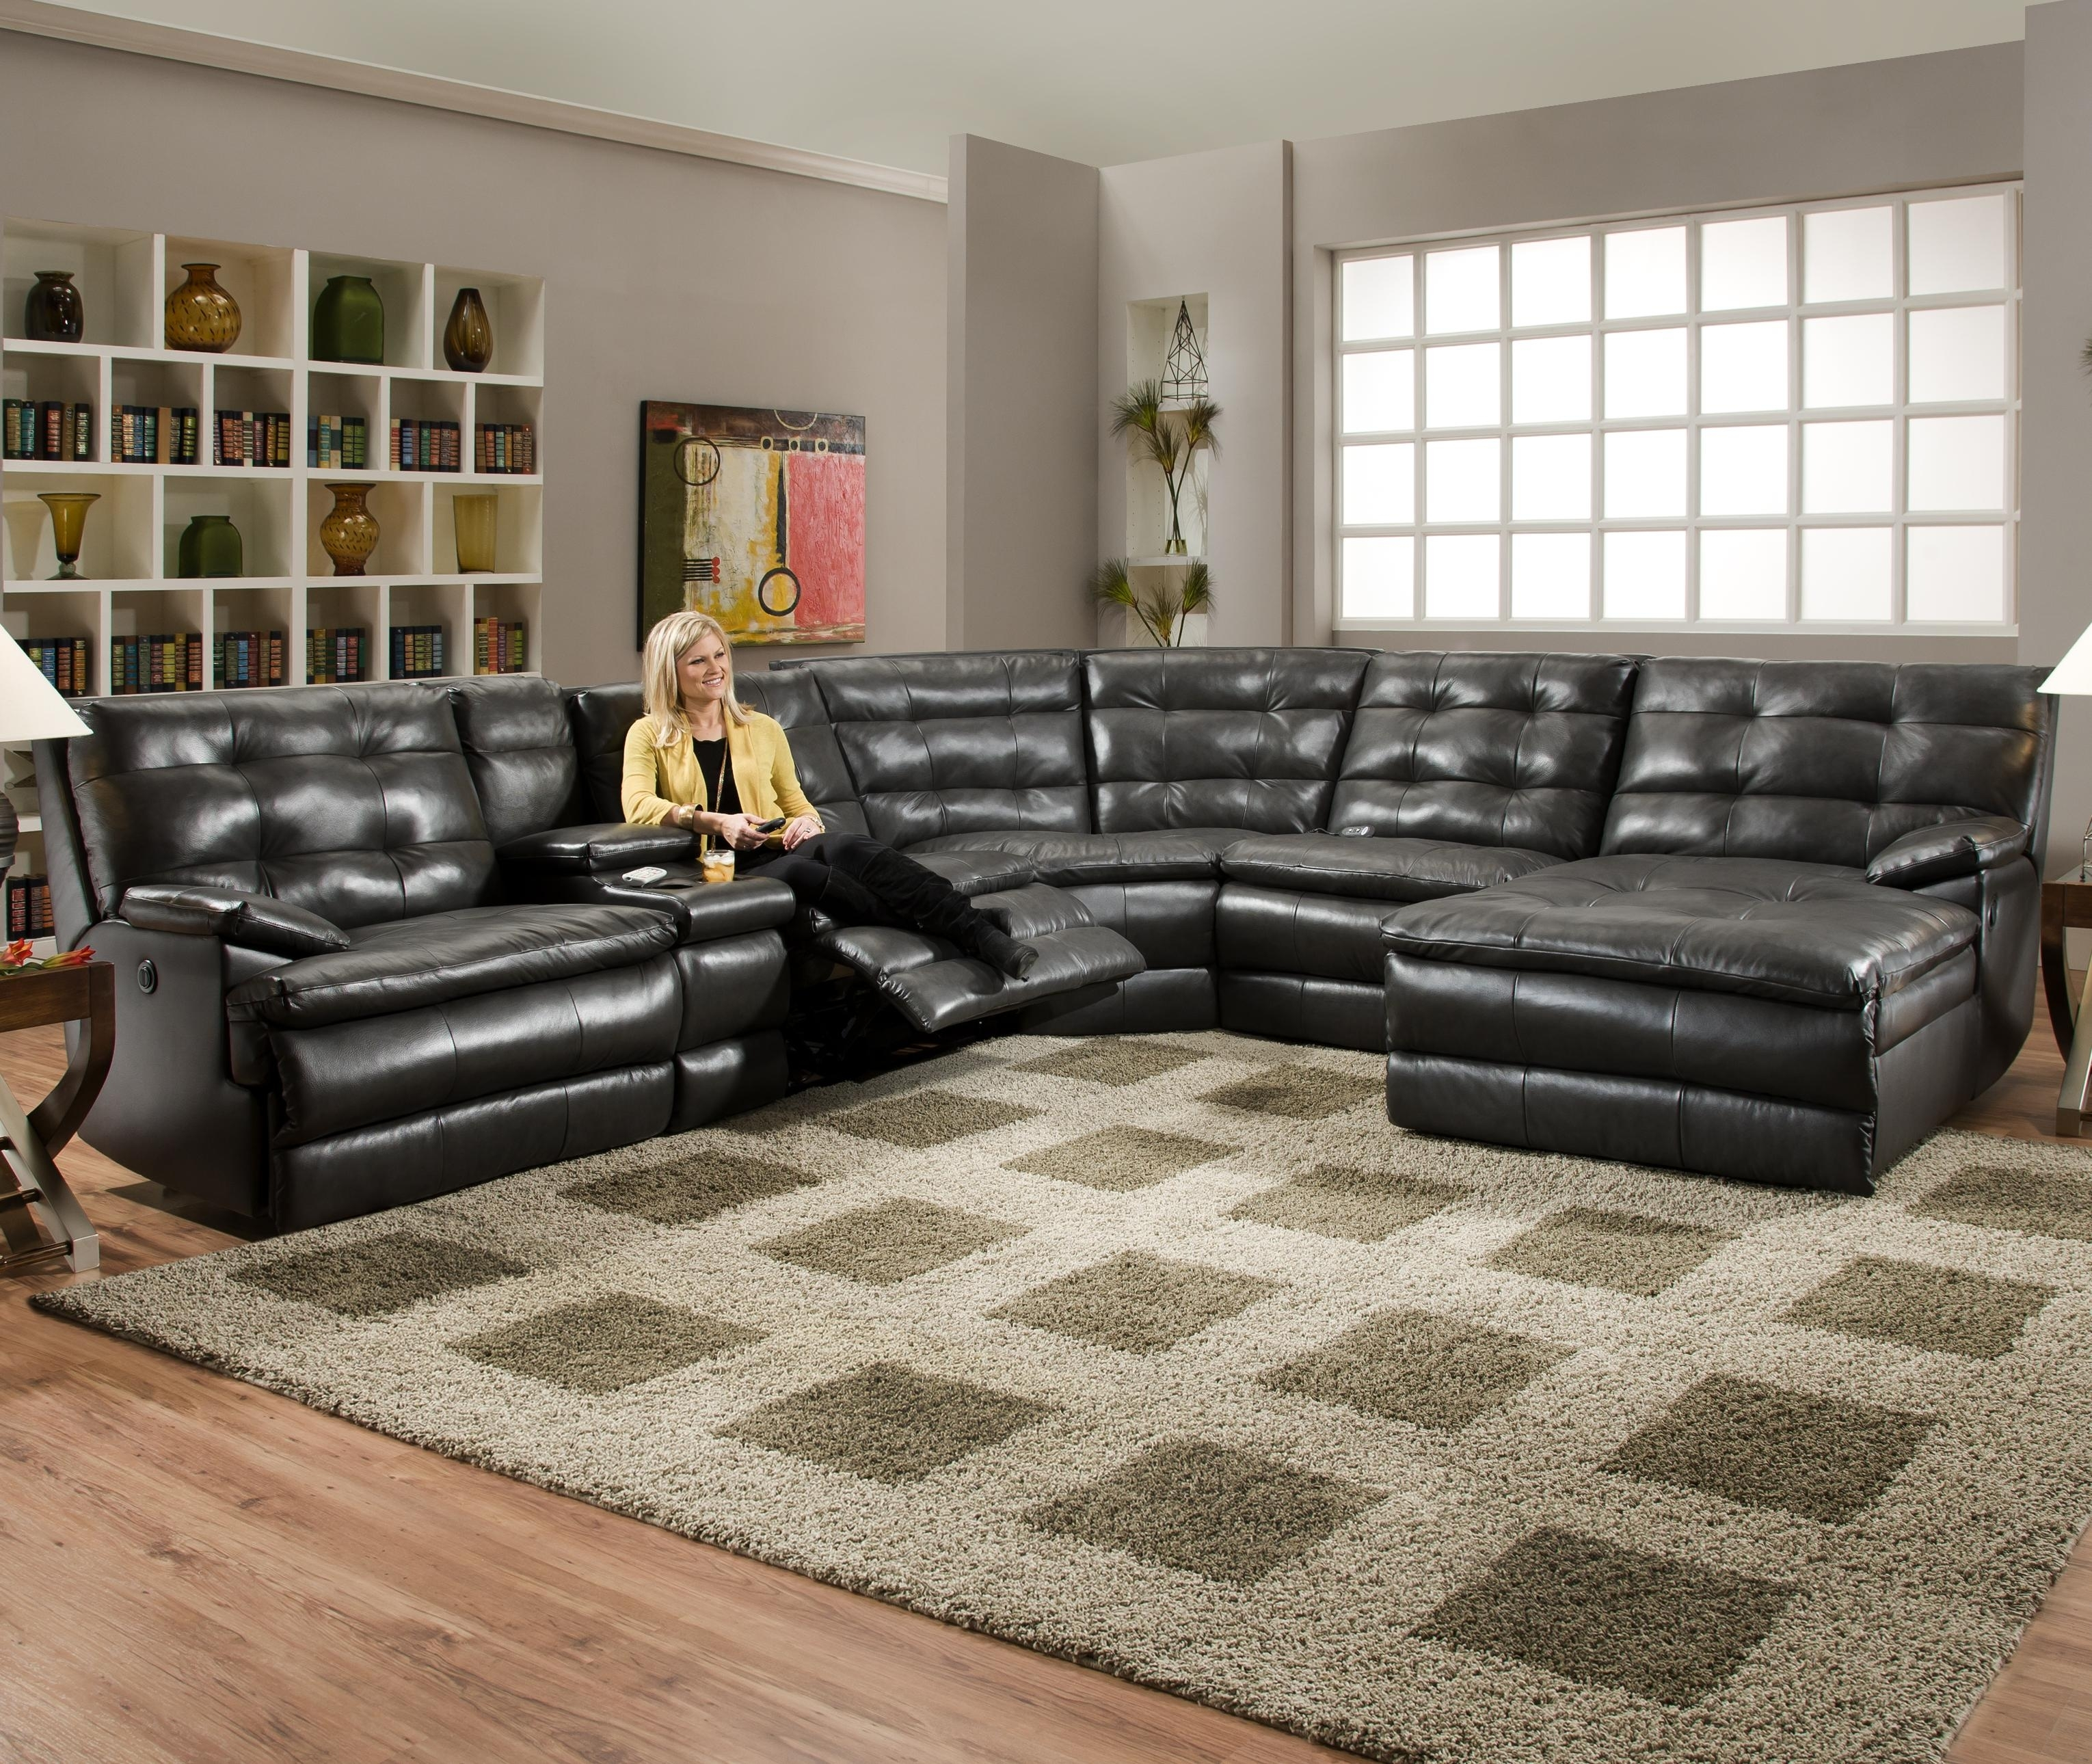 Luxurious Tufted Leather Sectional Sofa In Classy Black Color With regarding Dayton Ohio Sectional Sofas (Image 7 of 10)